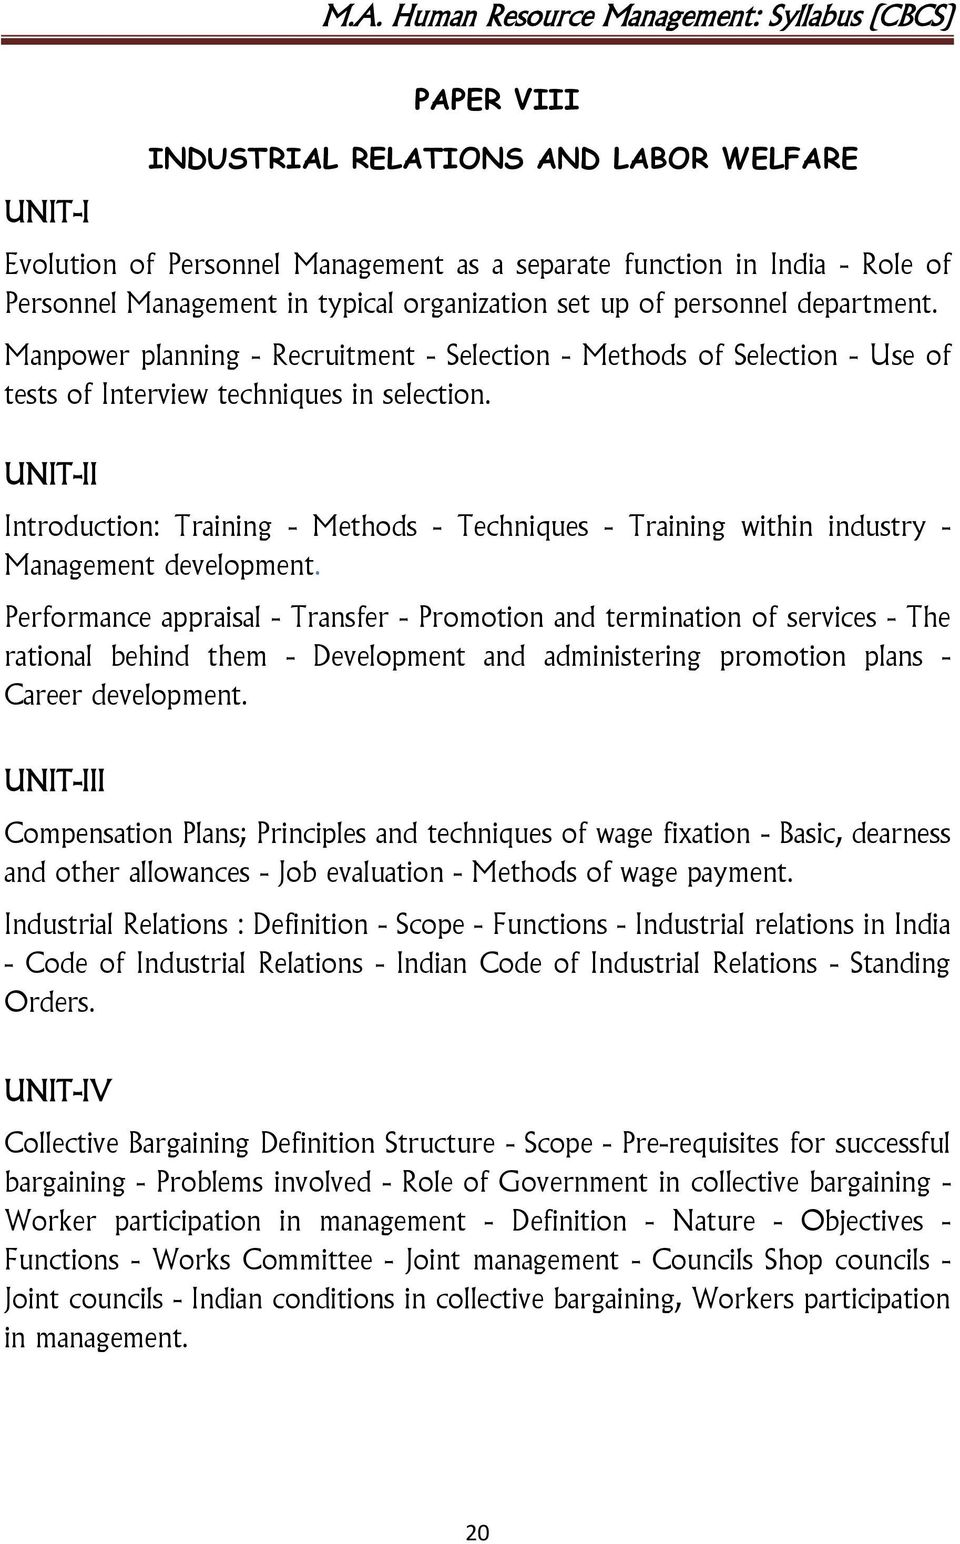 UNIT-II Introduction: Training - Methods - Techniques - Training within industry - Management development.